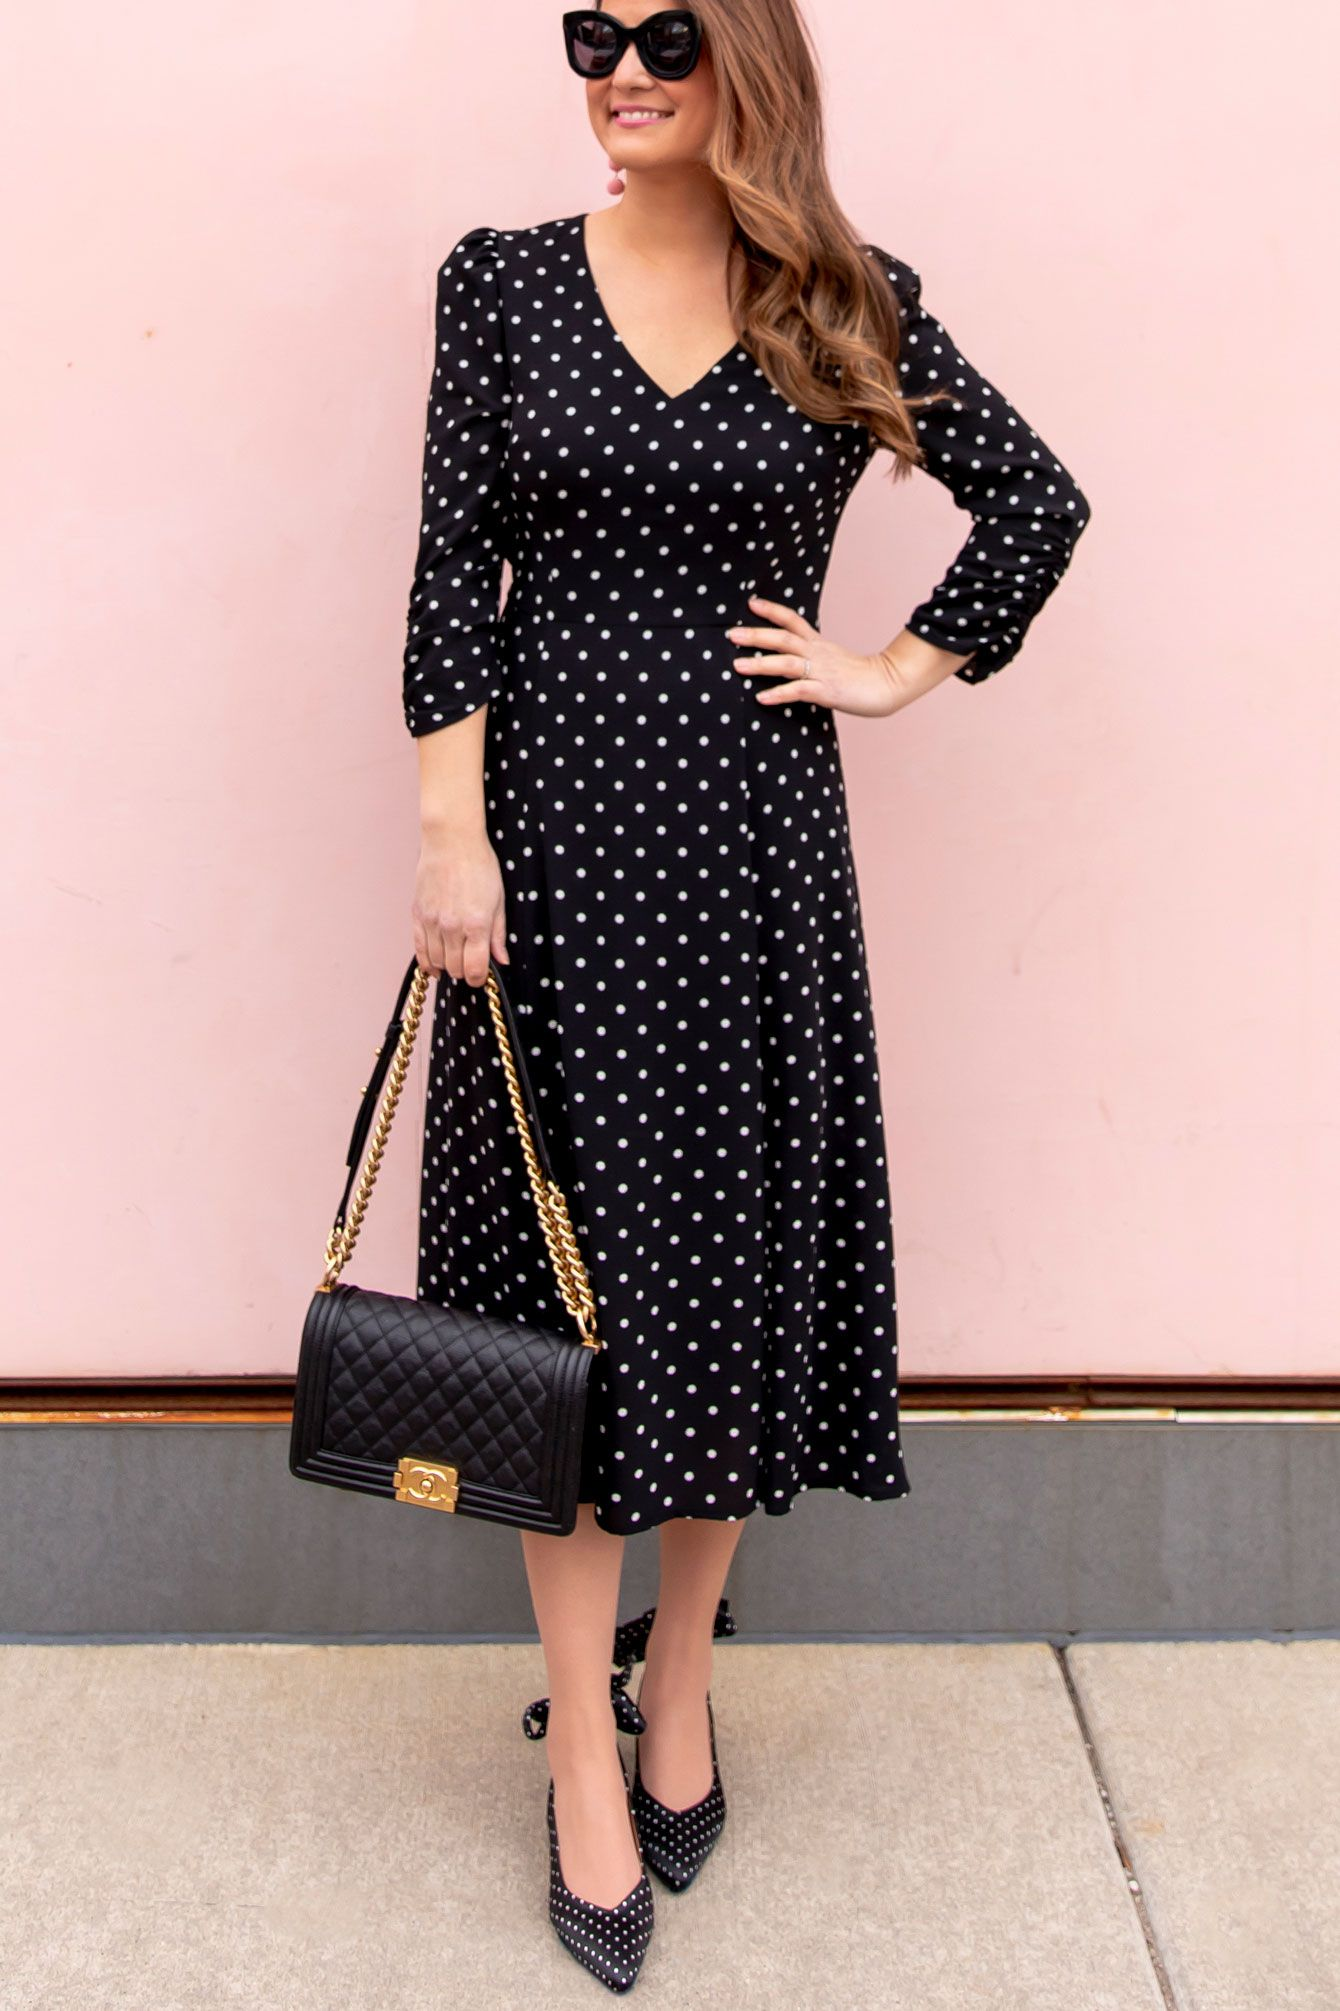 Styling A Long Sleeve Polka Dot Midi Dress Style Charade Dresses Skirt Outfits Fall Gorgeous Dresses [ 2011 x 1340 Pixel ]